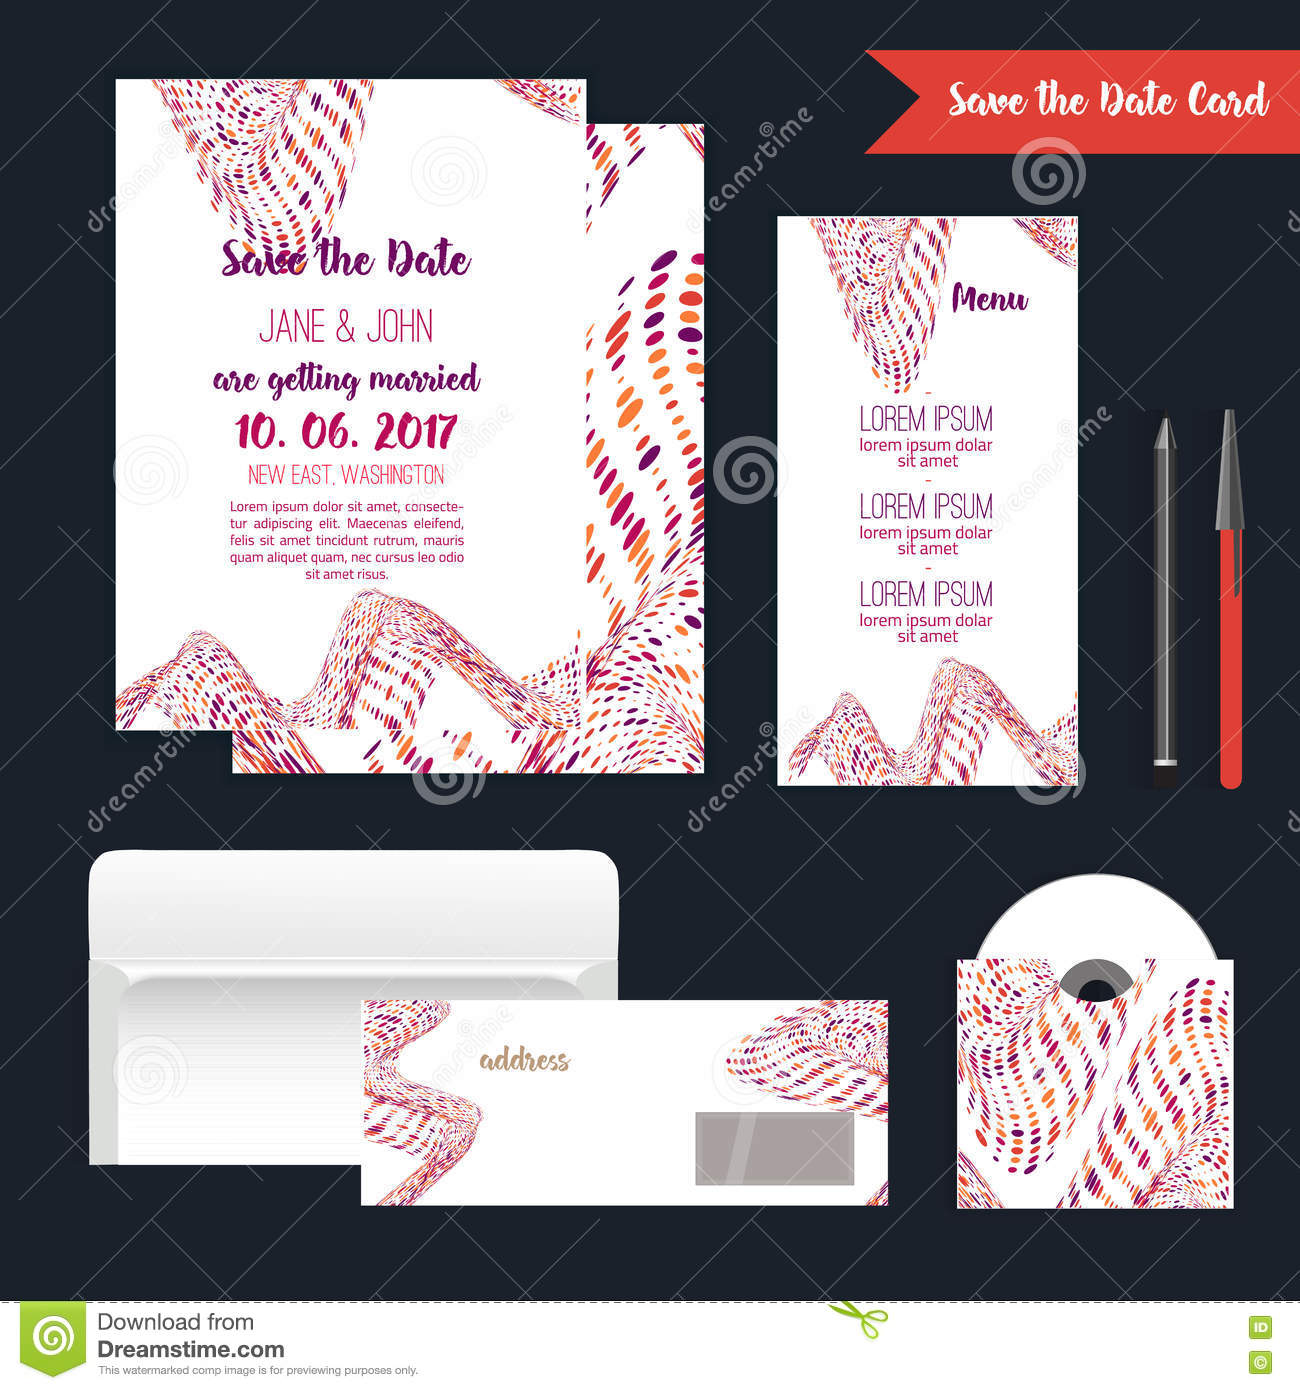 Geometry Save The Date Card With Modern Colorful Shapes